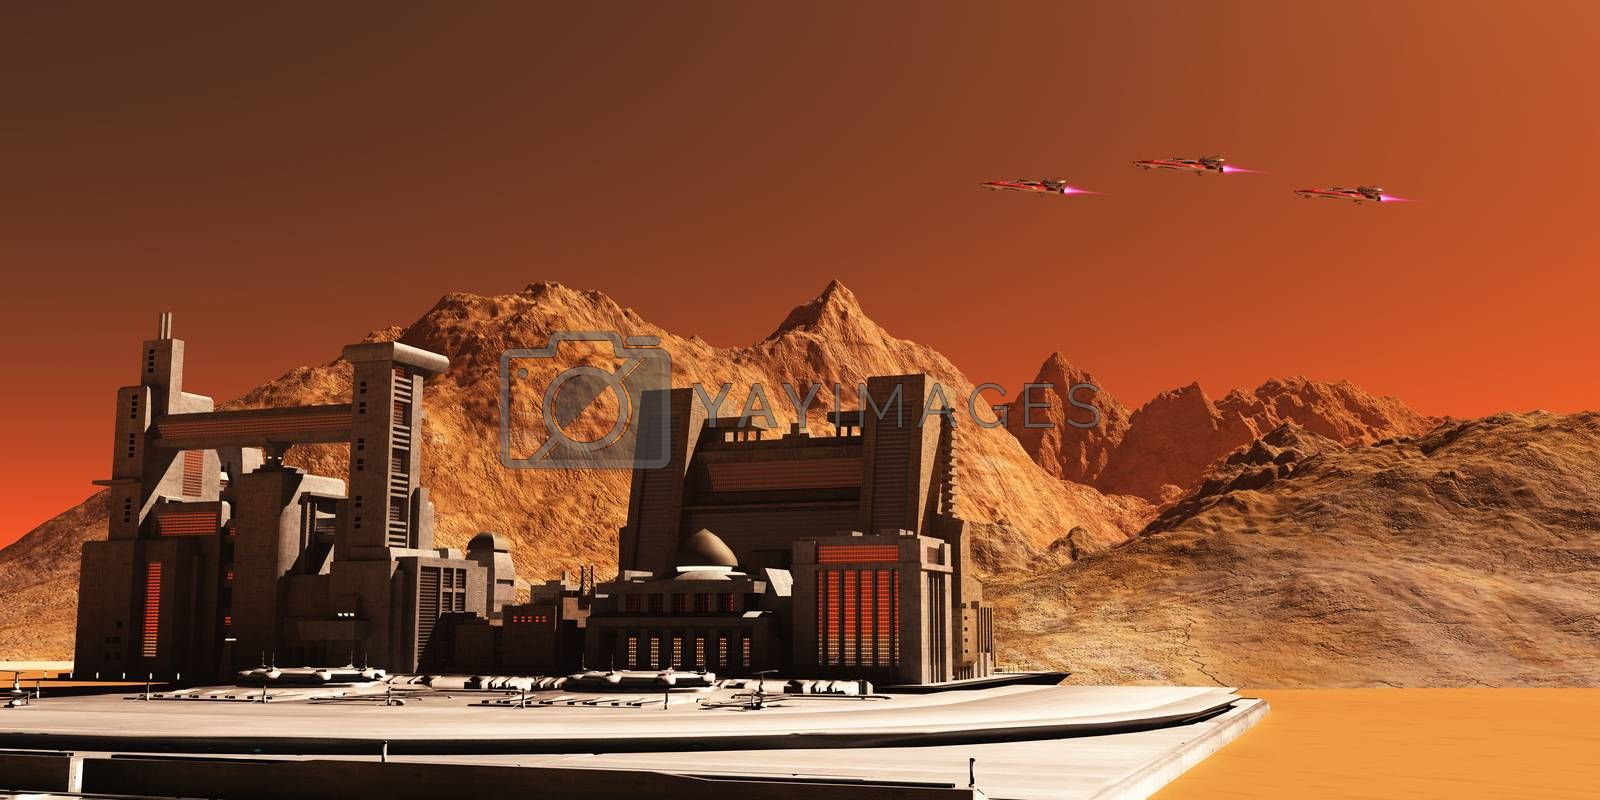 Three spacecraft fly near an installation habitat on the red planet of Mars in the future.